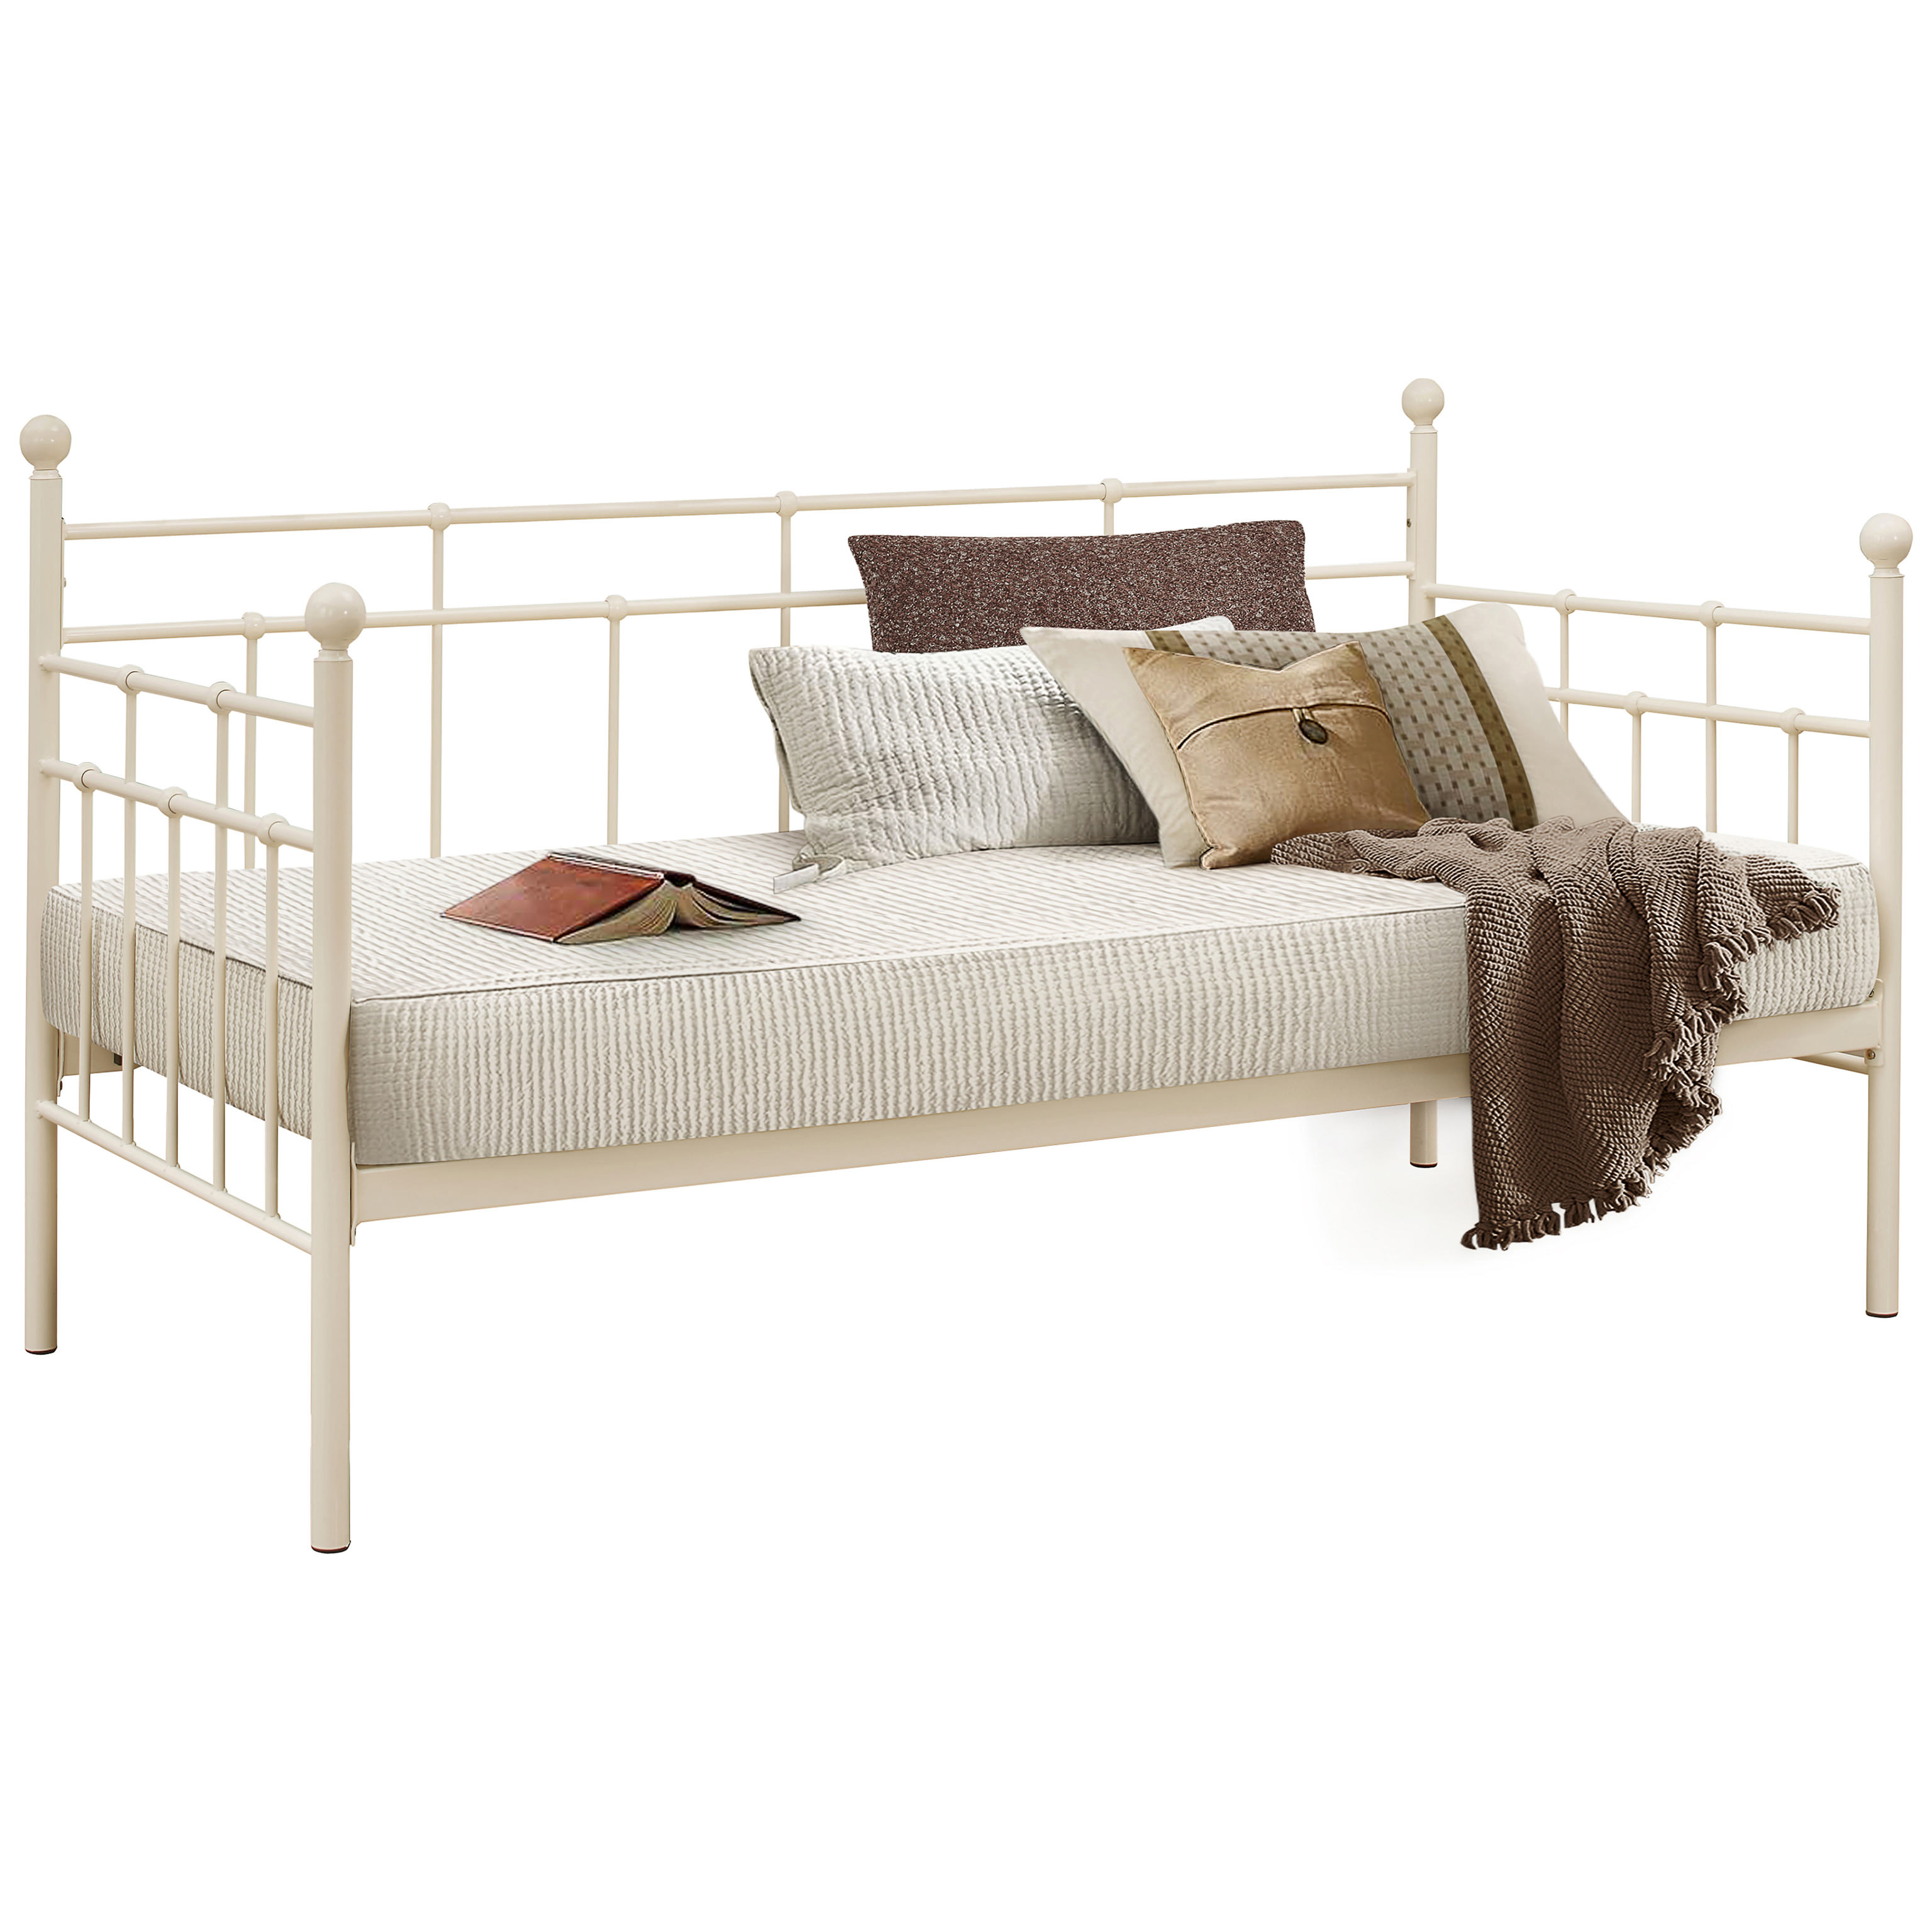 Metal Day Bed Daybed Frame and Trundle Guest Underbed | Single 3ft ...